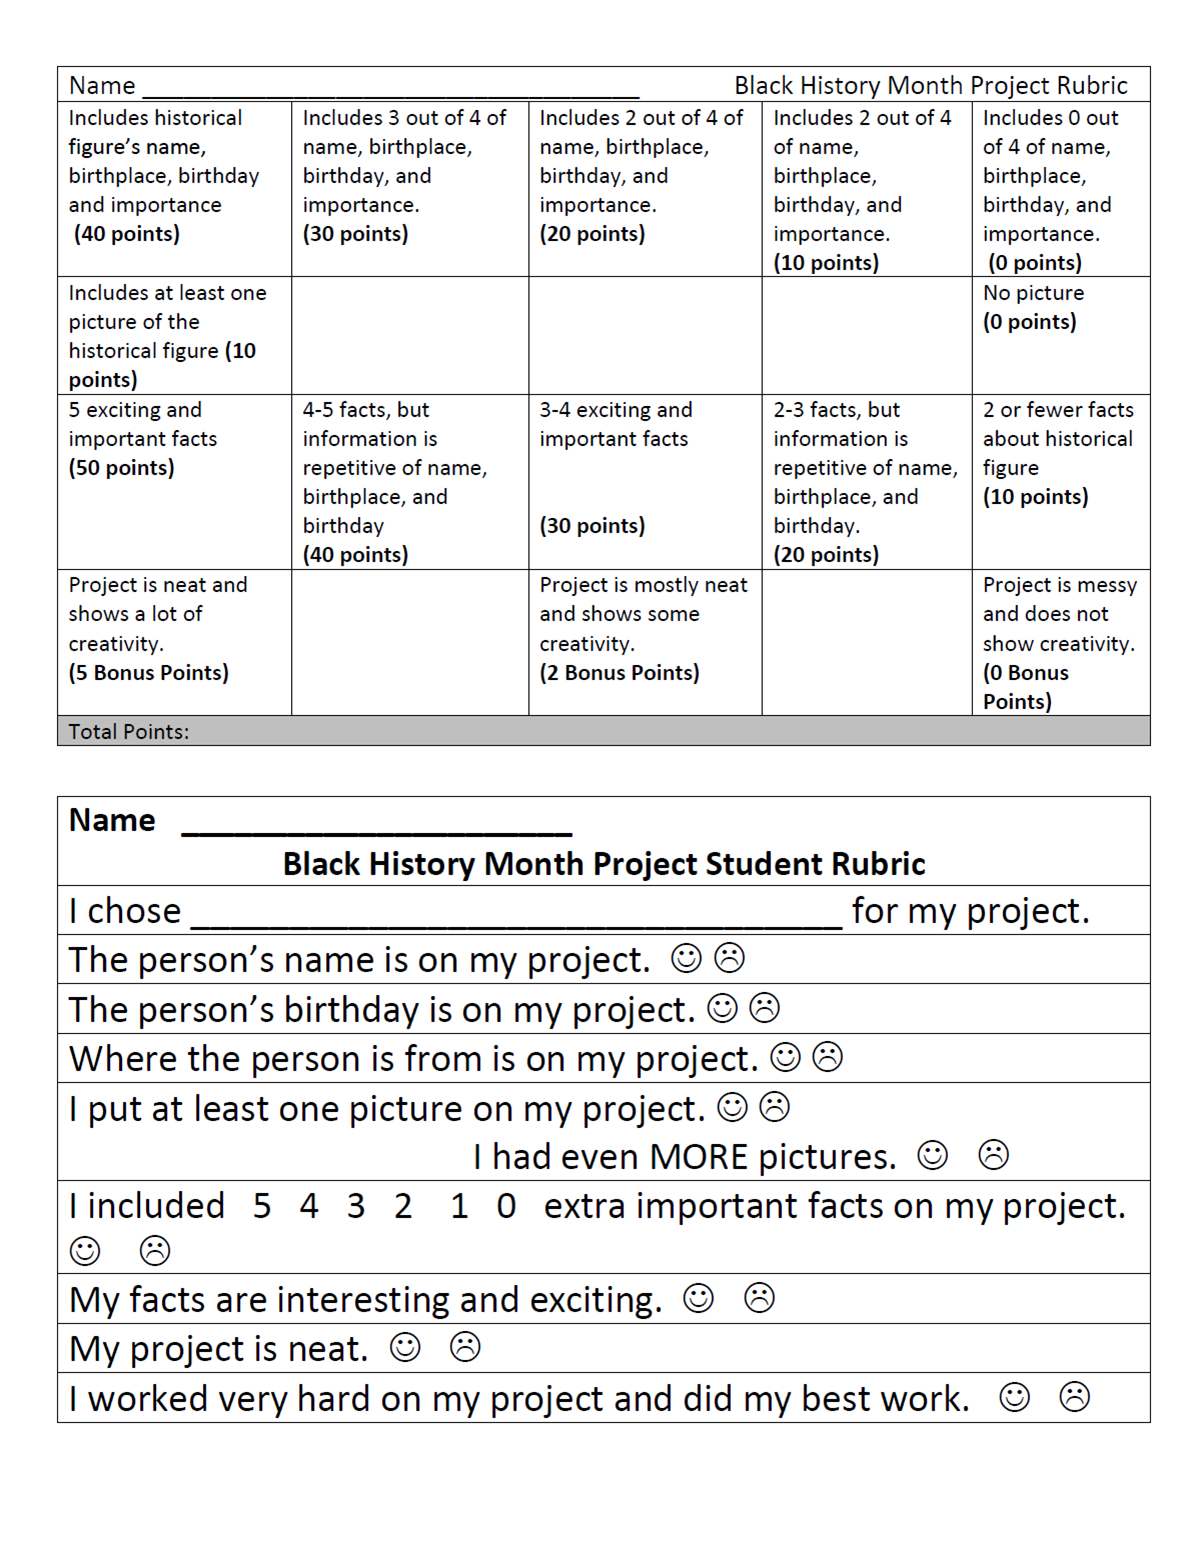 black history month project rubric black history month black history month project rubric